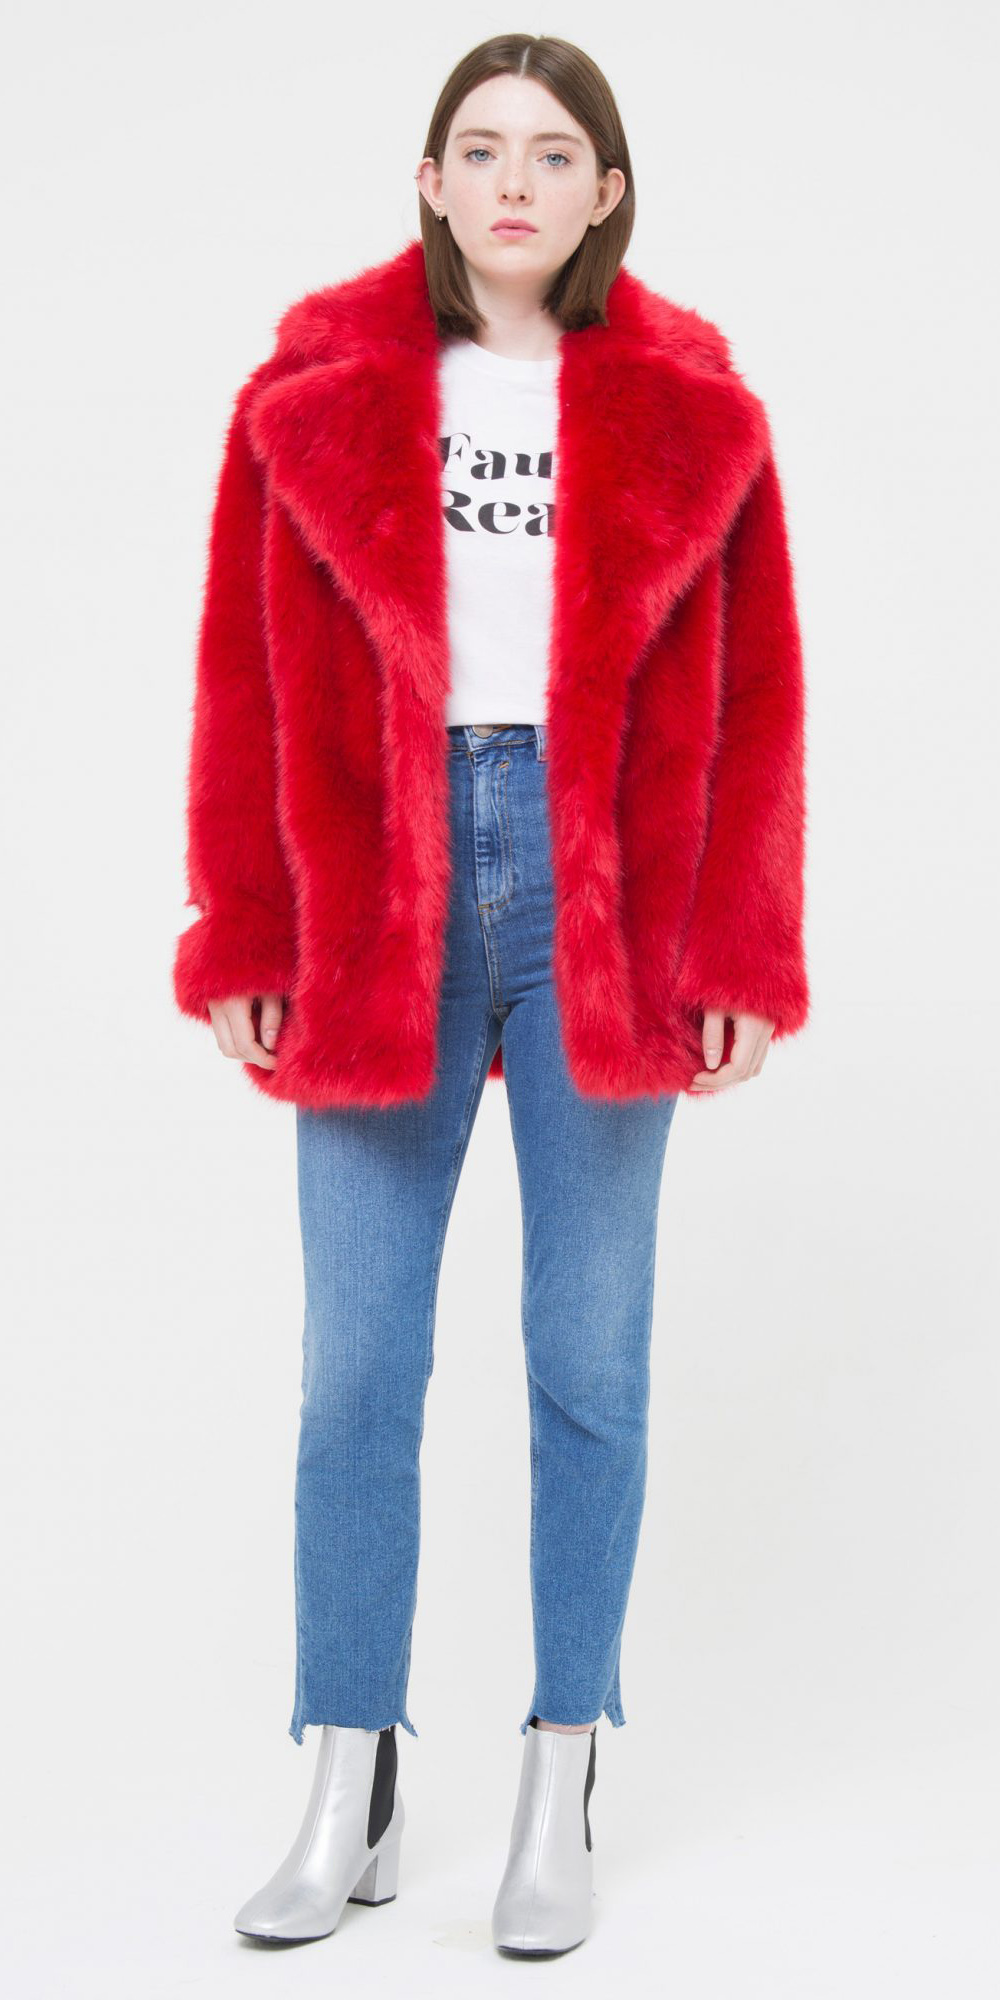 blue-med-skinny-jeans-white-graphic-tee-white-shoe-booties-red-jacket-coat-fur-fuzz-fall-winter-hairr-weekend.jpg